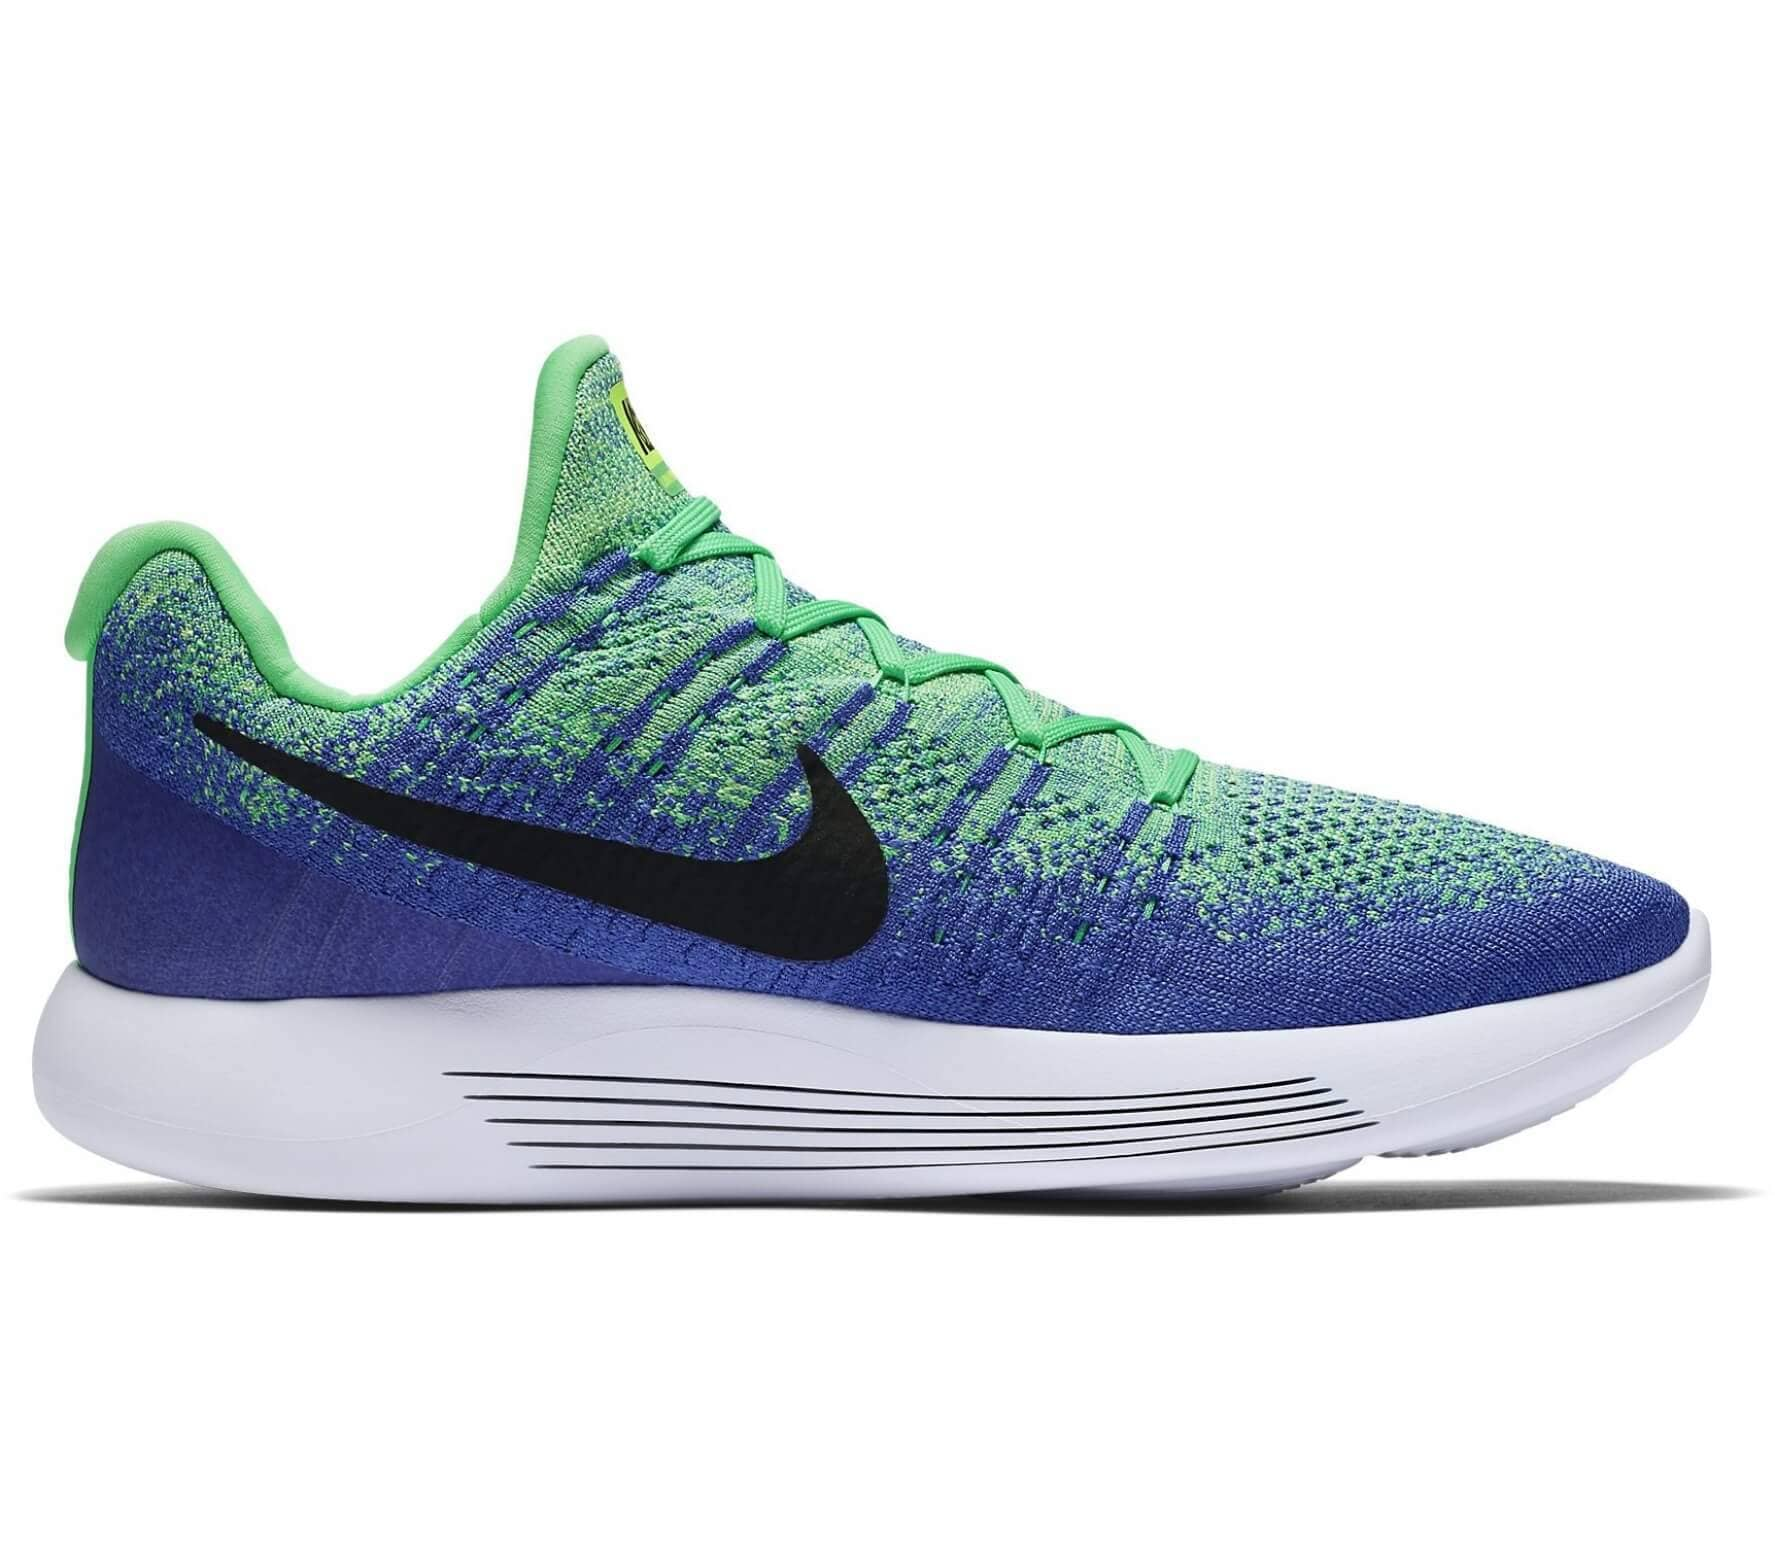 size 40 3b68d 3b9ca Nike - Lunar Epic Low Flyknit 2 mens running shoes (greenblue)